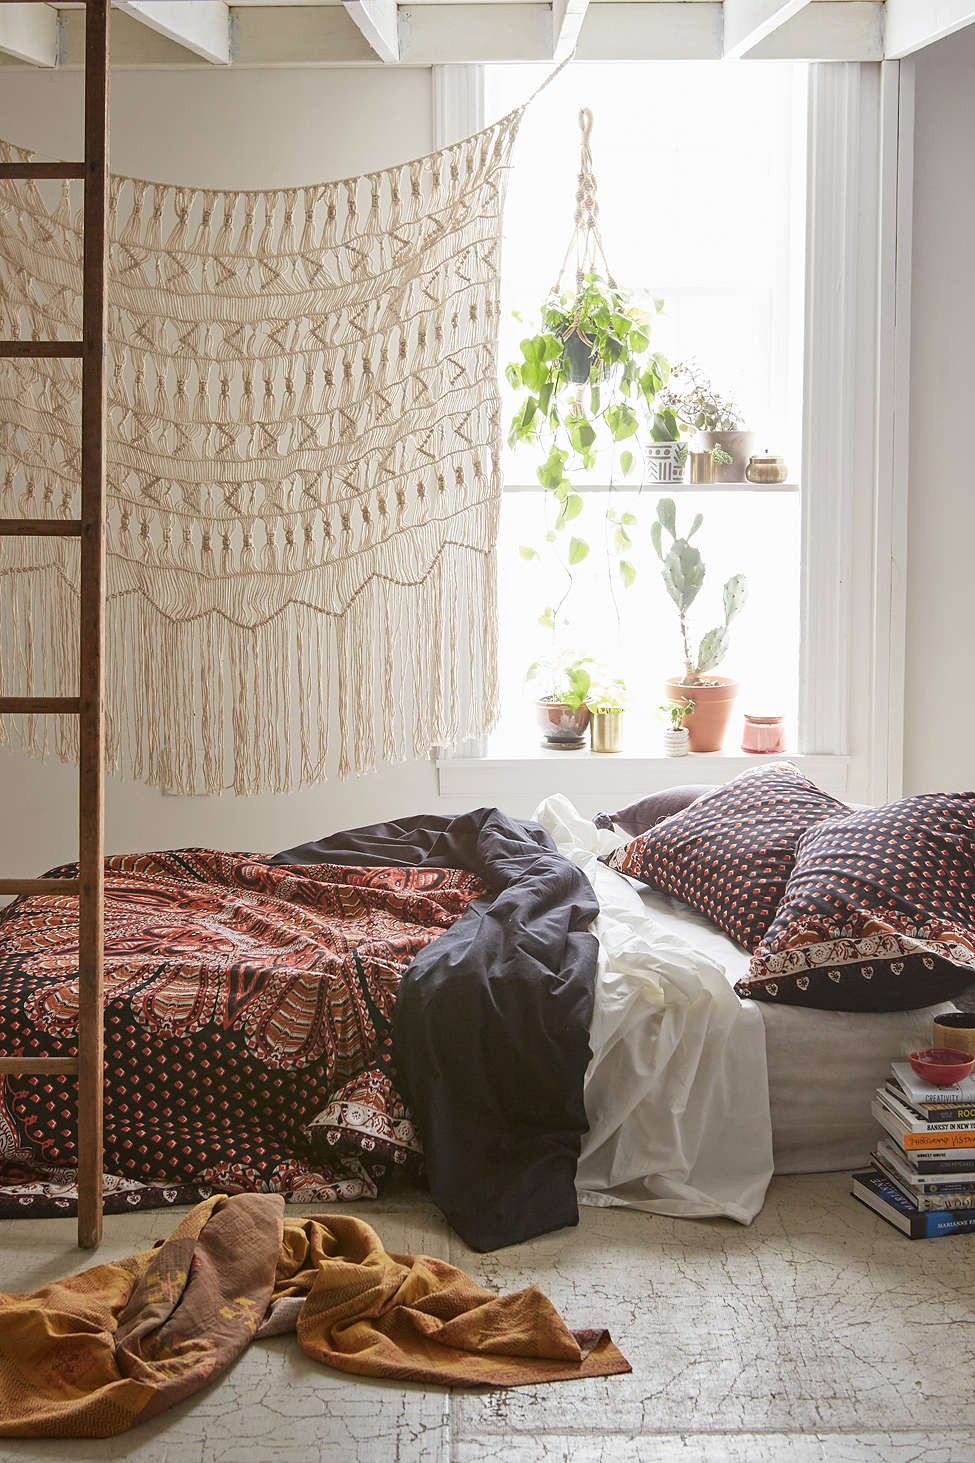 Best ideas about Bohemian Style Bedroom . Save or Pin 31 Bohemian Bedroom Ideas Decoholic Now.